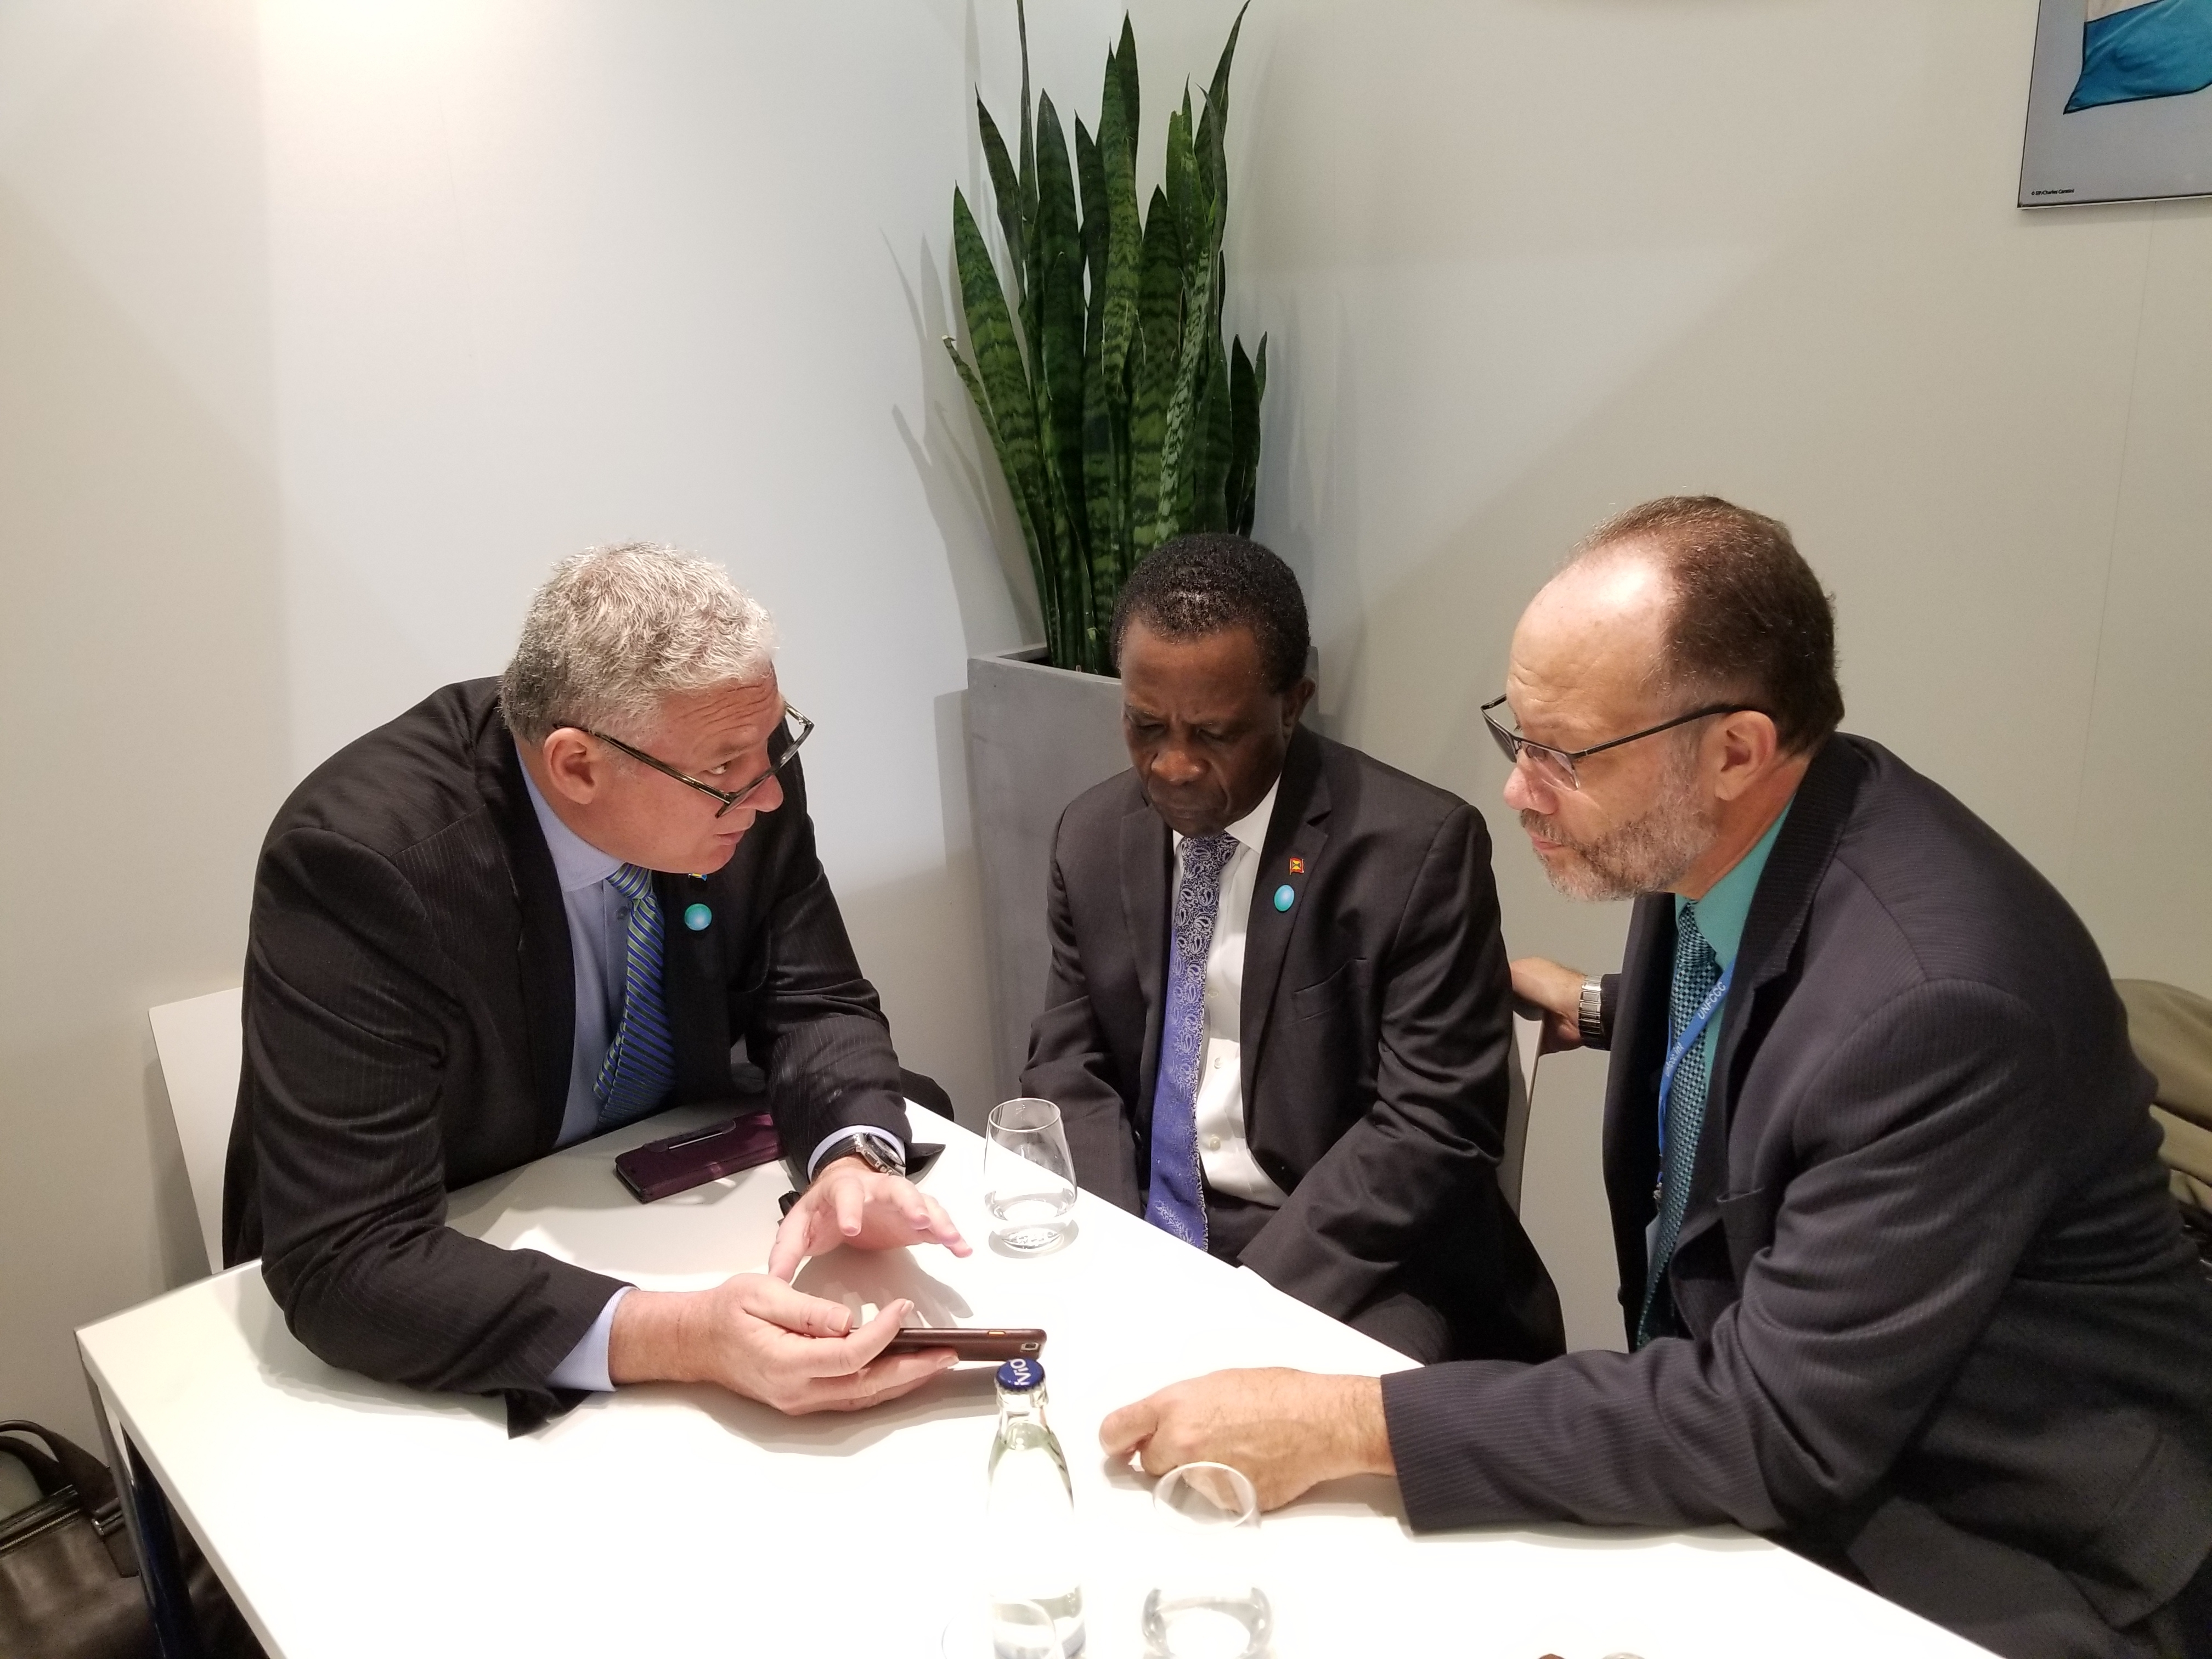 L-r: Hon. A. Chastanet, Prime Minister of  Saint Lucia;Hon. K. Mitchell, CARICOM Chair and Prime Minister of Grenada; Amb. I. LaRocque, CARICOM Secretary General